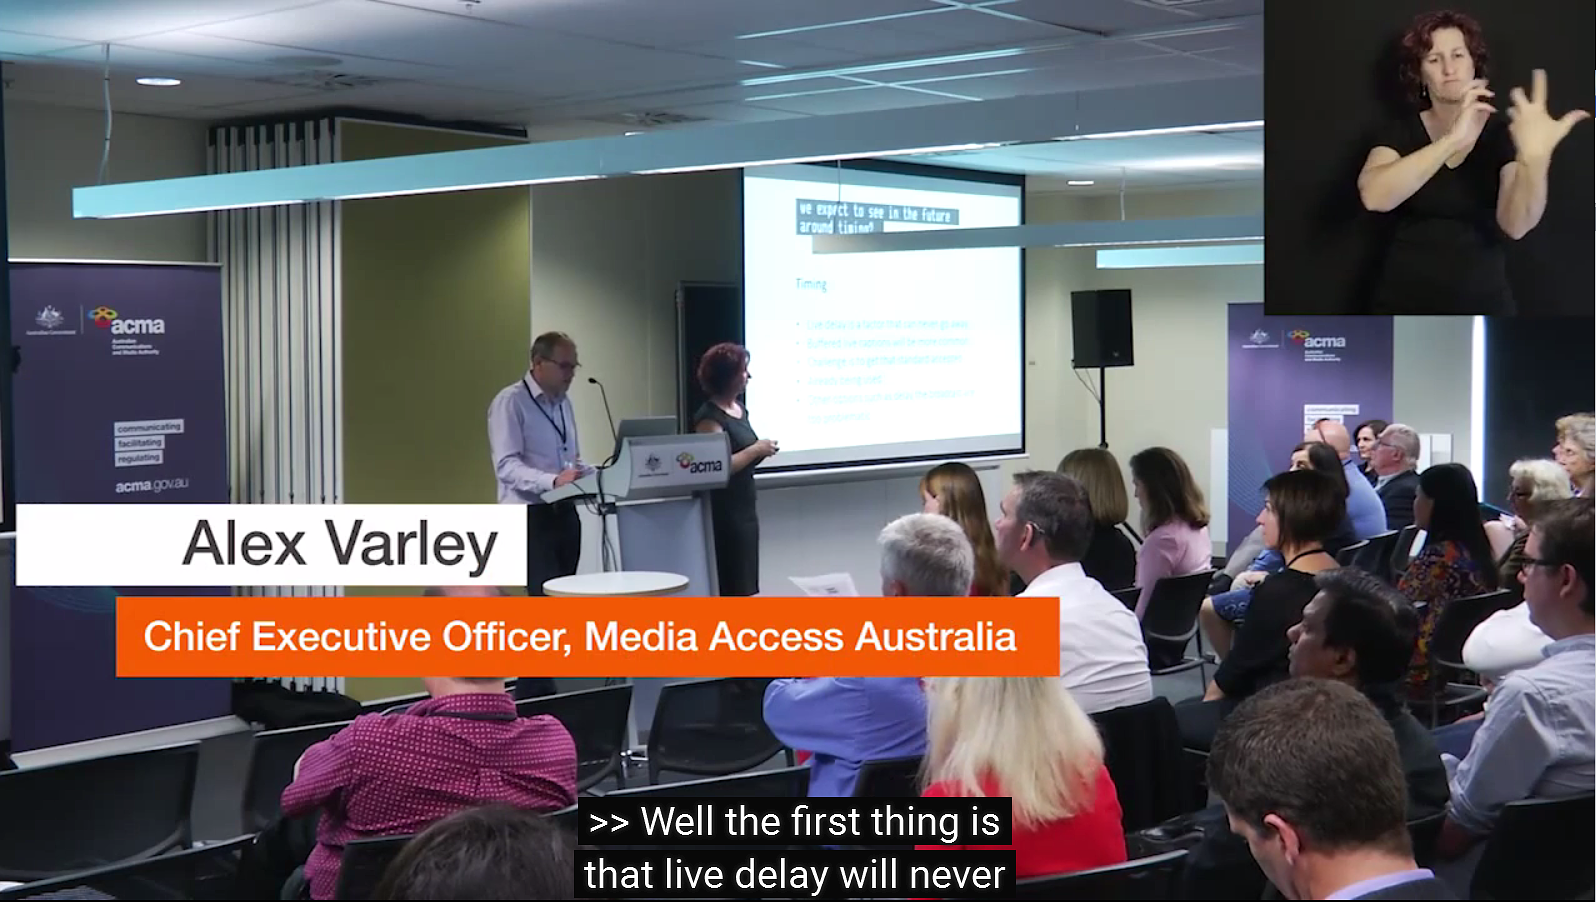 Alex Varley, Chief Executive Officer, Media Access Australia presenting at the ACMA Citizen Conversation on live captioning. Image credit: Highlights from 'Live captioning: let's talk', part of the Citizen Conversation series